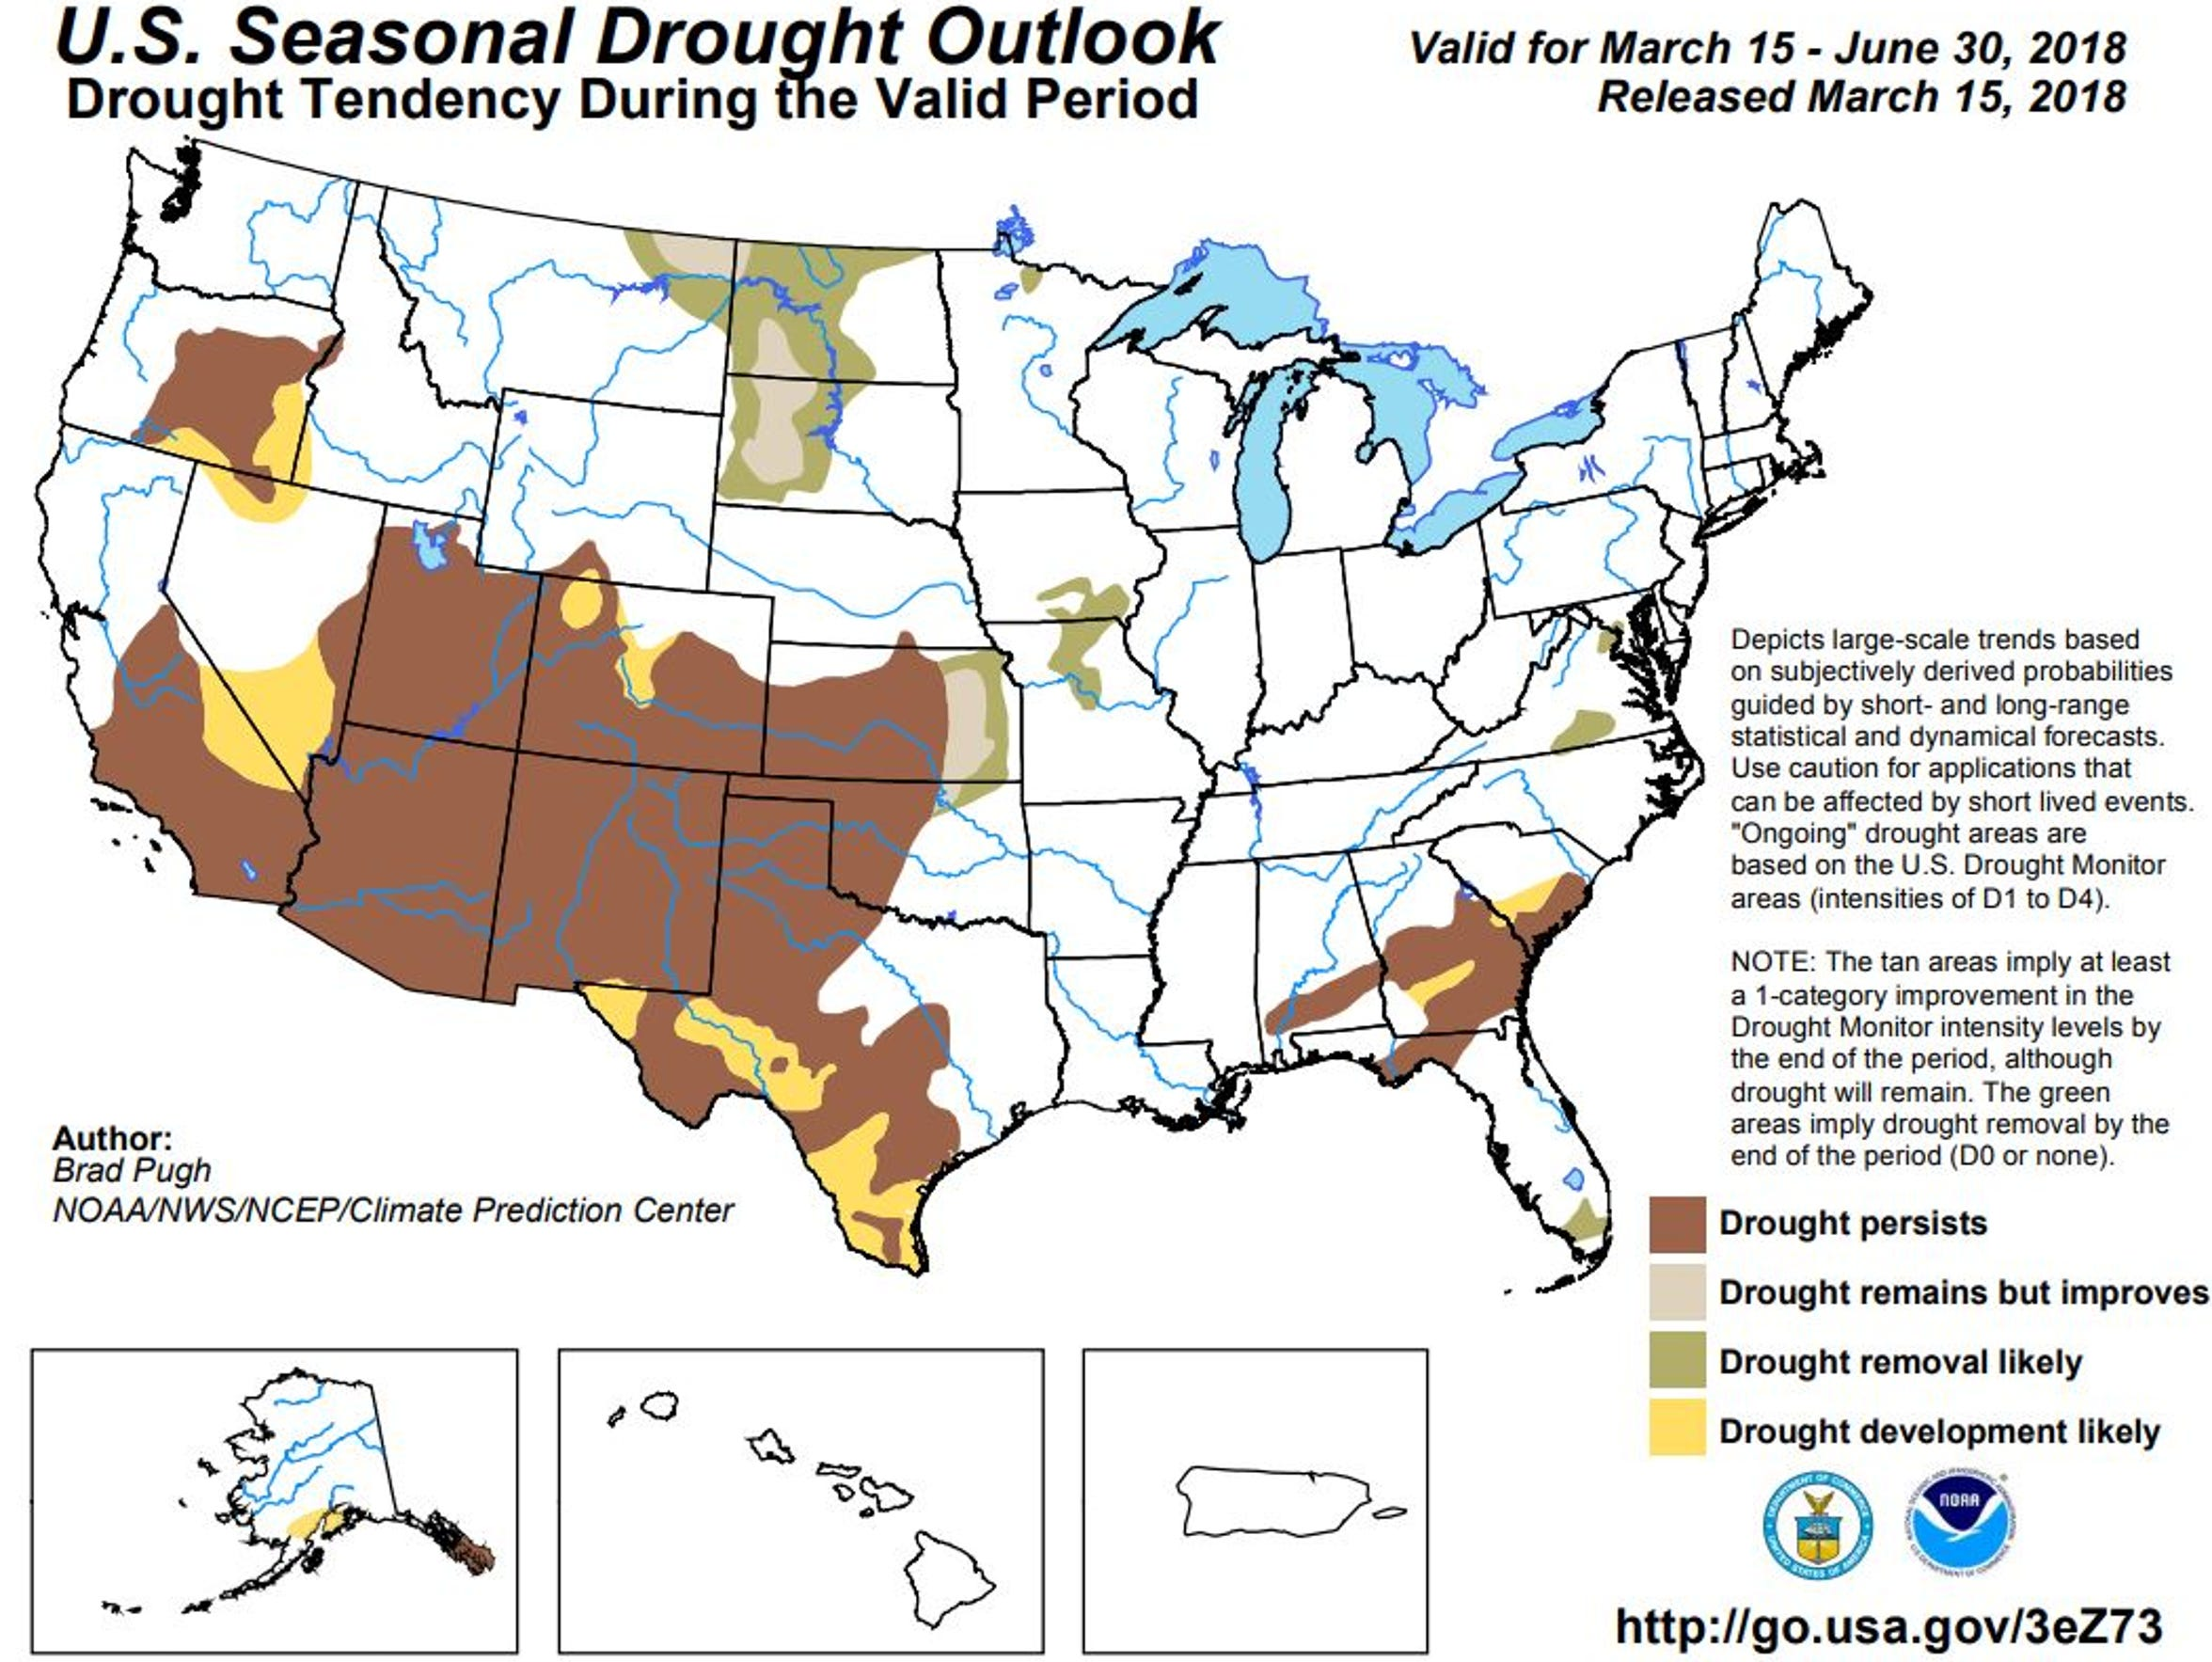 The Climate Prediction Center's seasonal drought outlook